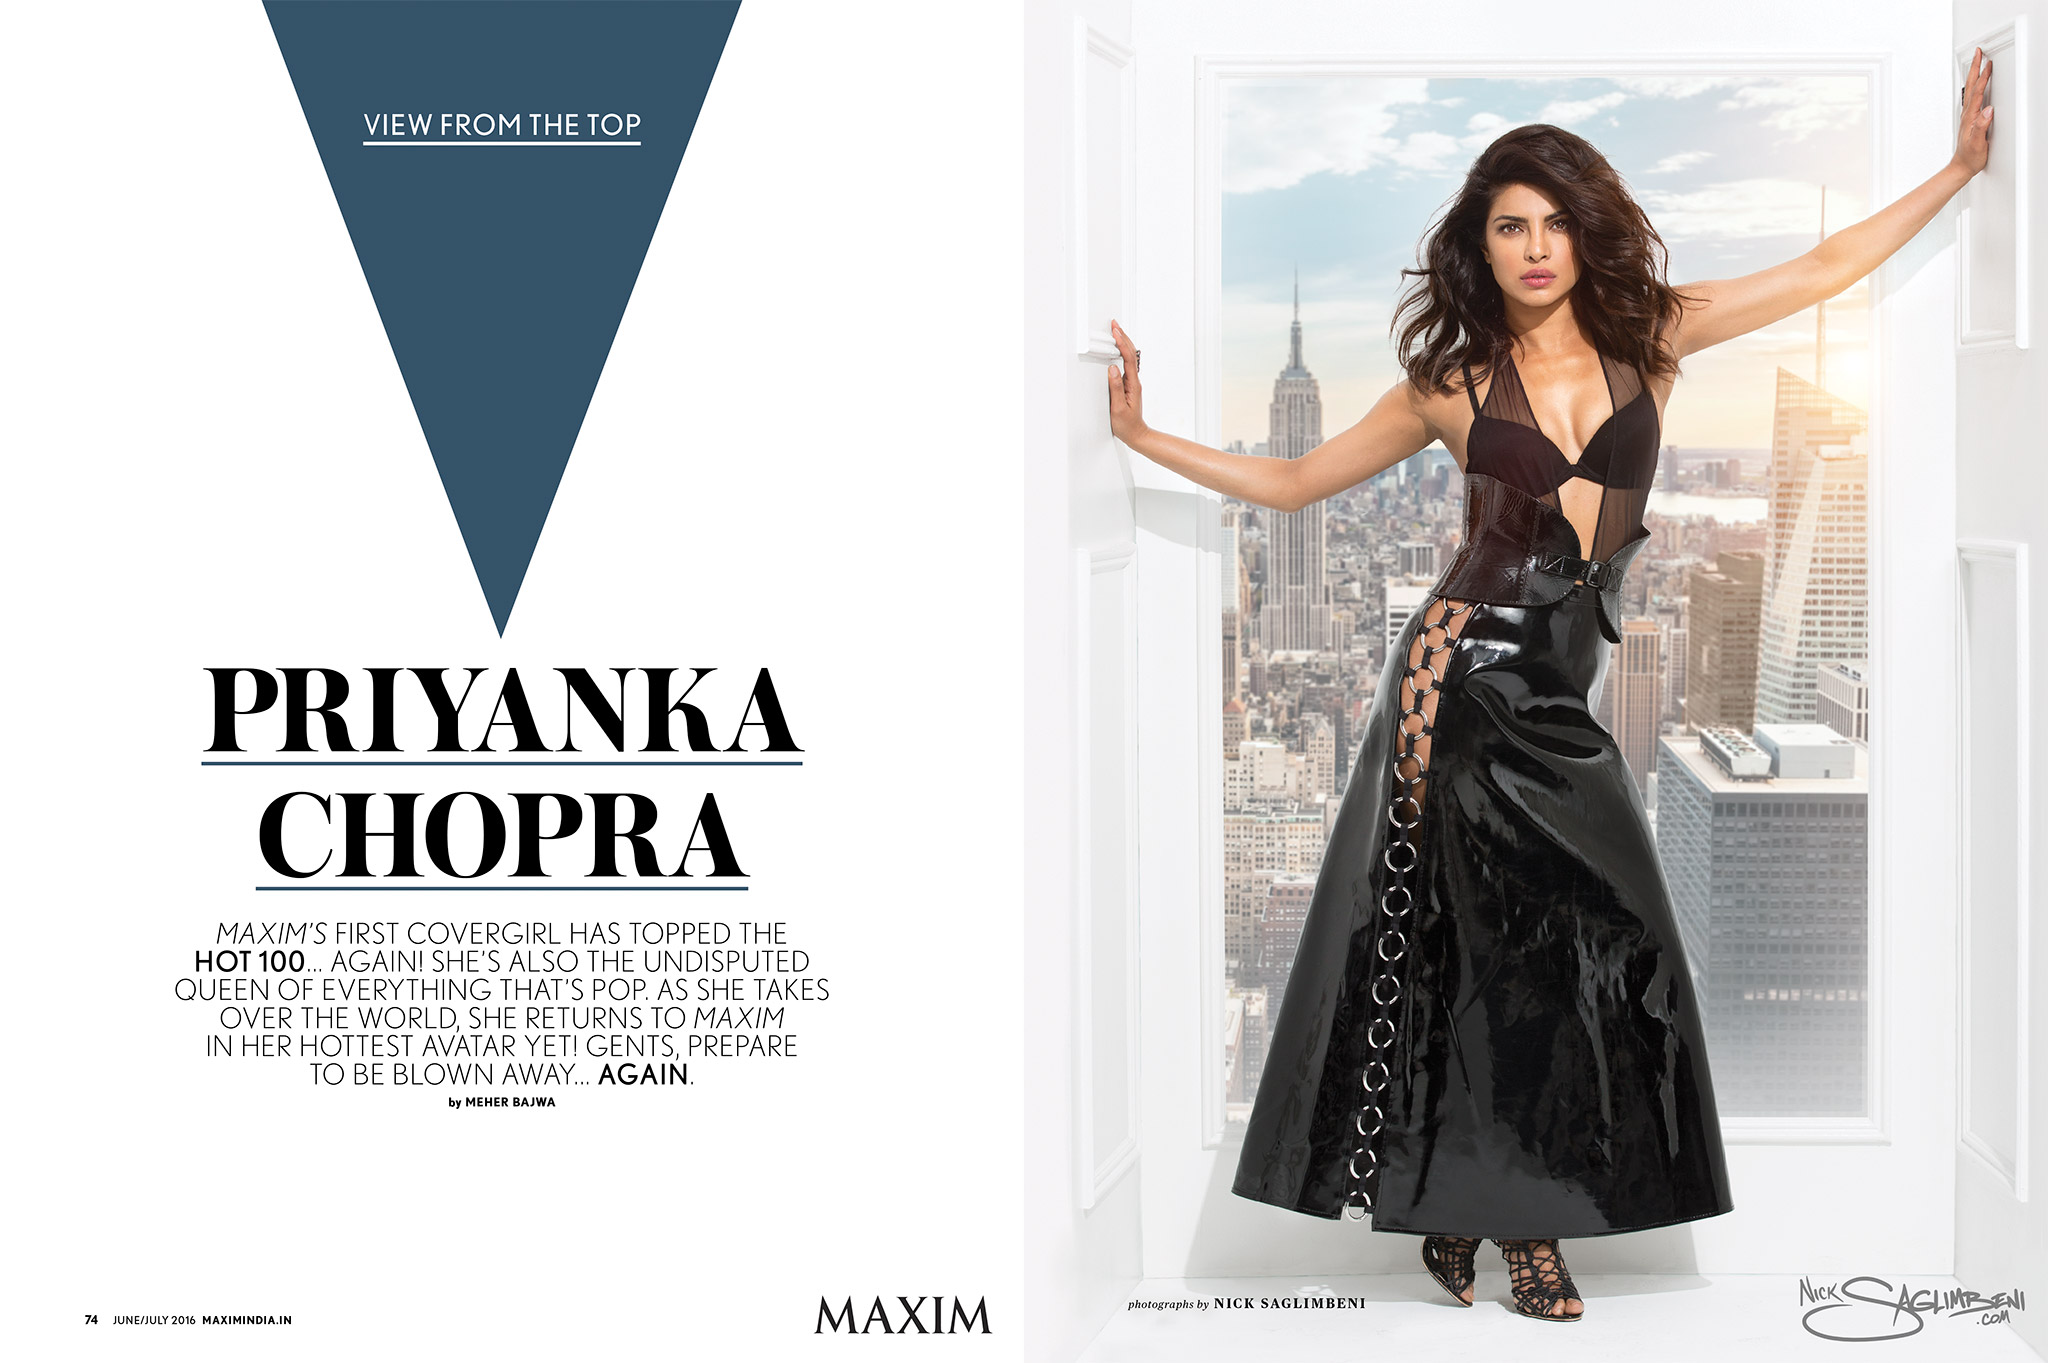 http://nicksaglimbeni.com/wp-content/uploads/2016/06/Maxim-India-Priyanka-Chopra-Hot-100-layout-photography-Nick-Saglimbeni1.jpg